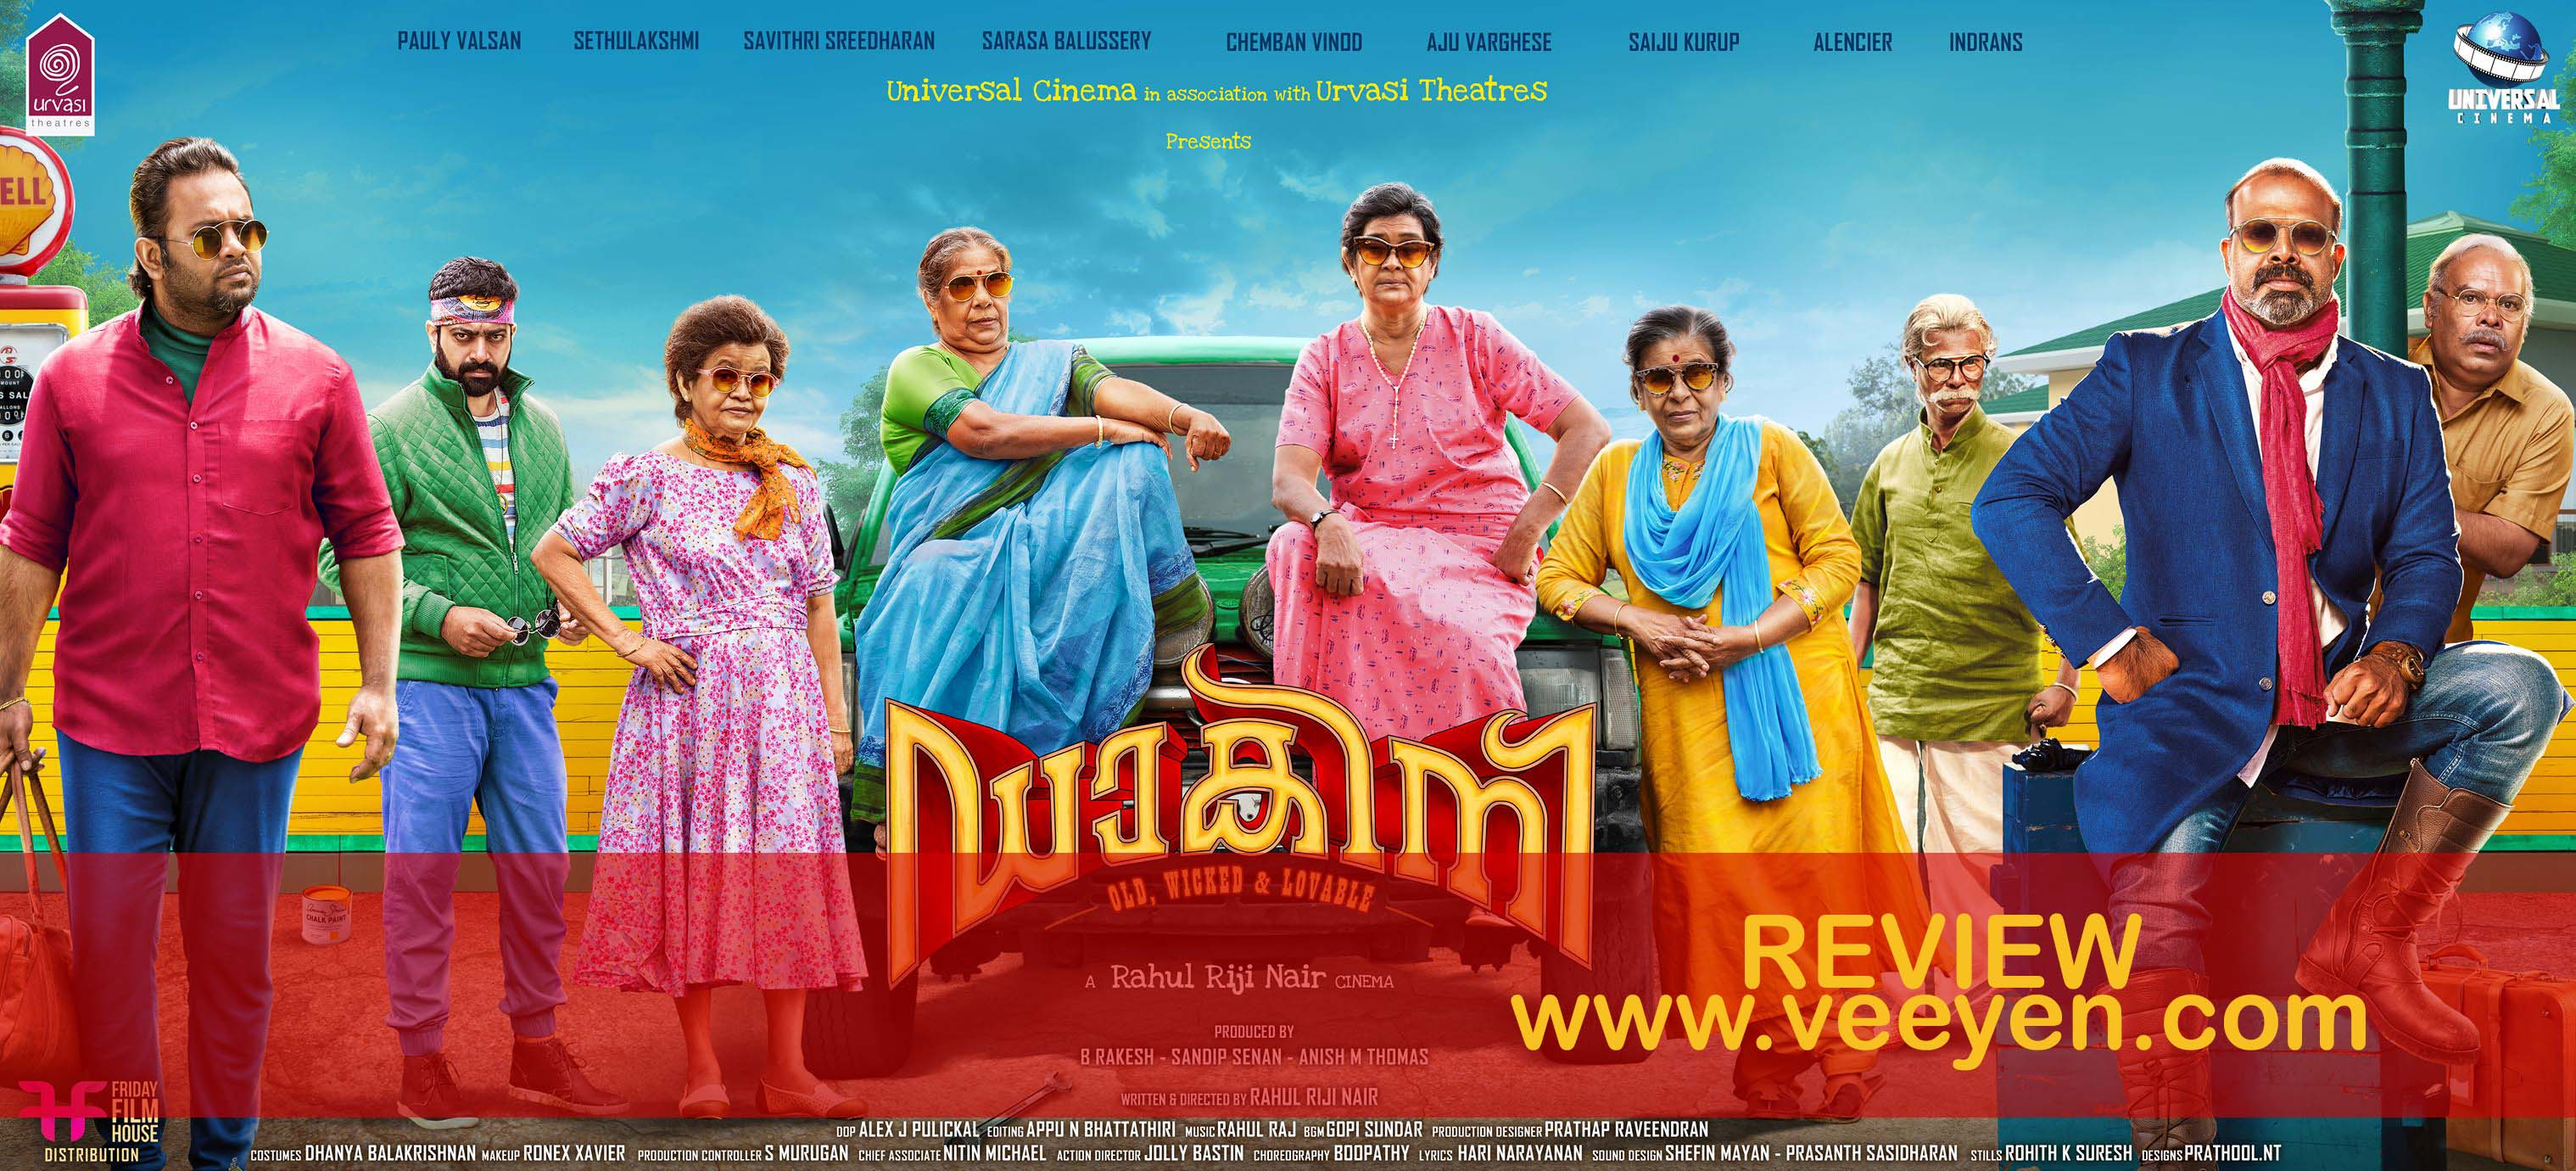 Dakini Movie Review Veeyen